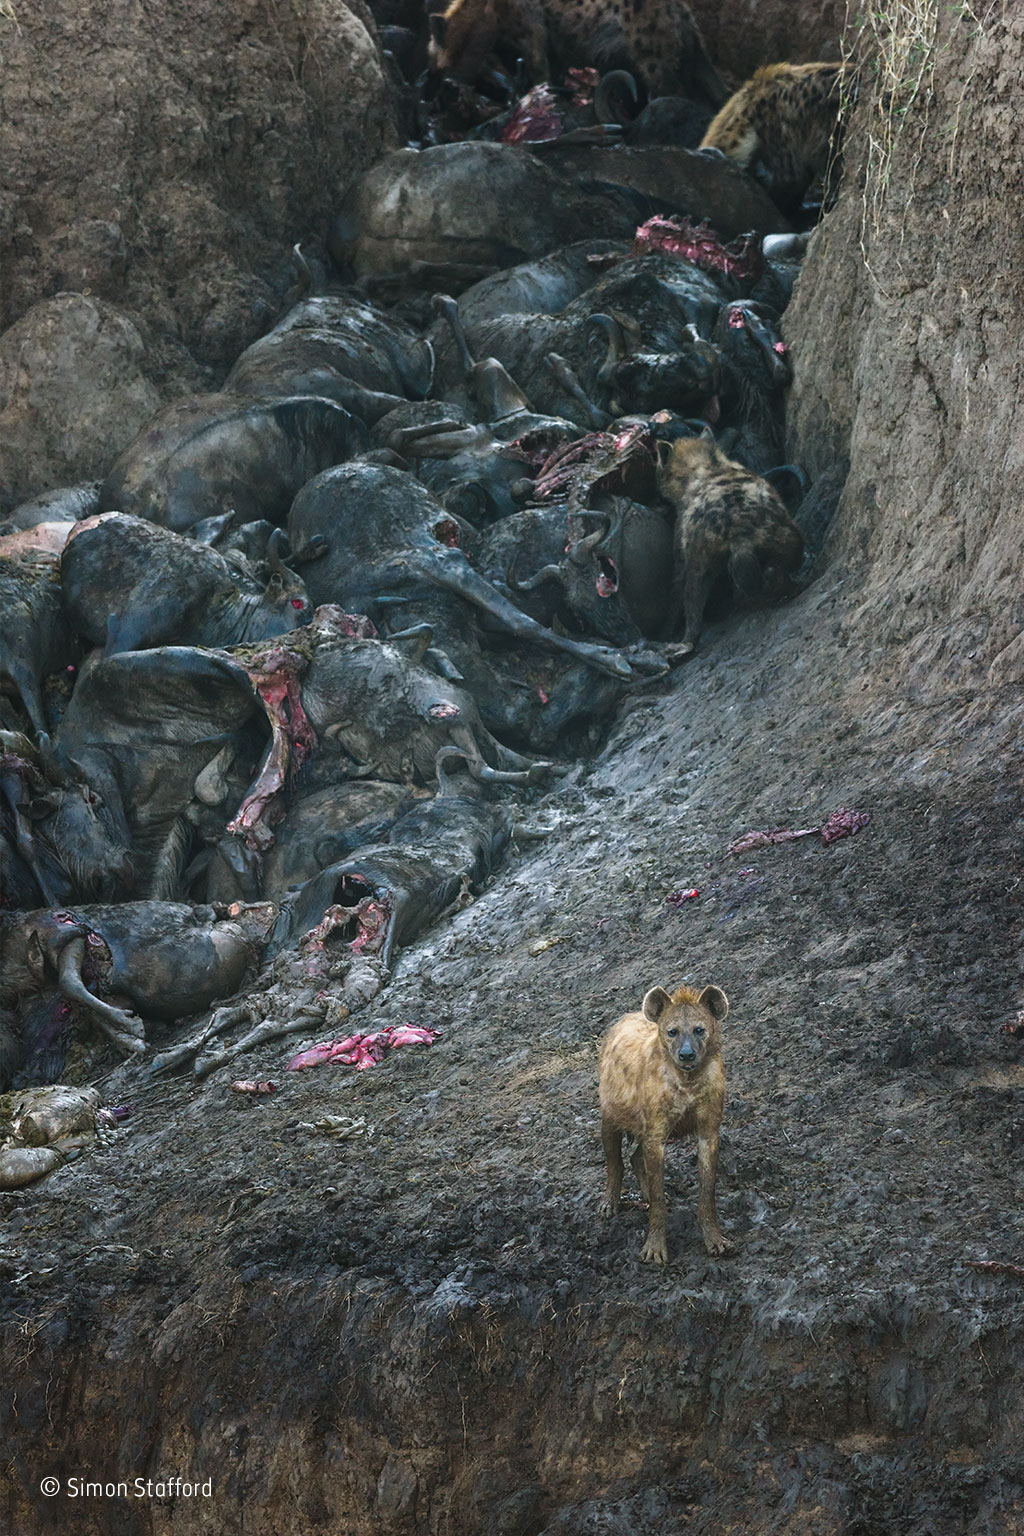 The aftermath, Simon Stafford, UK / Wildlife Photographer of the Year